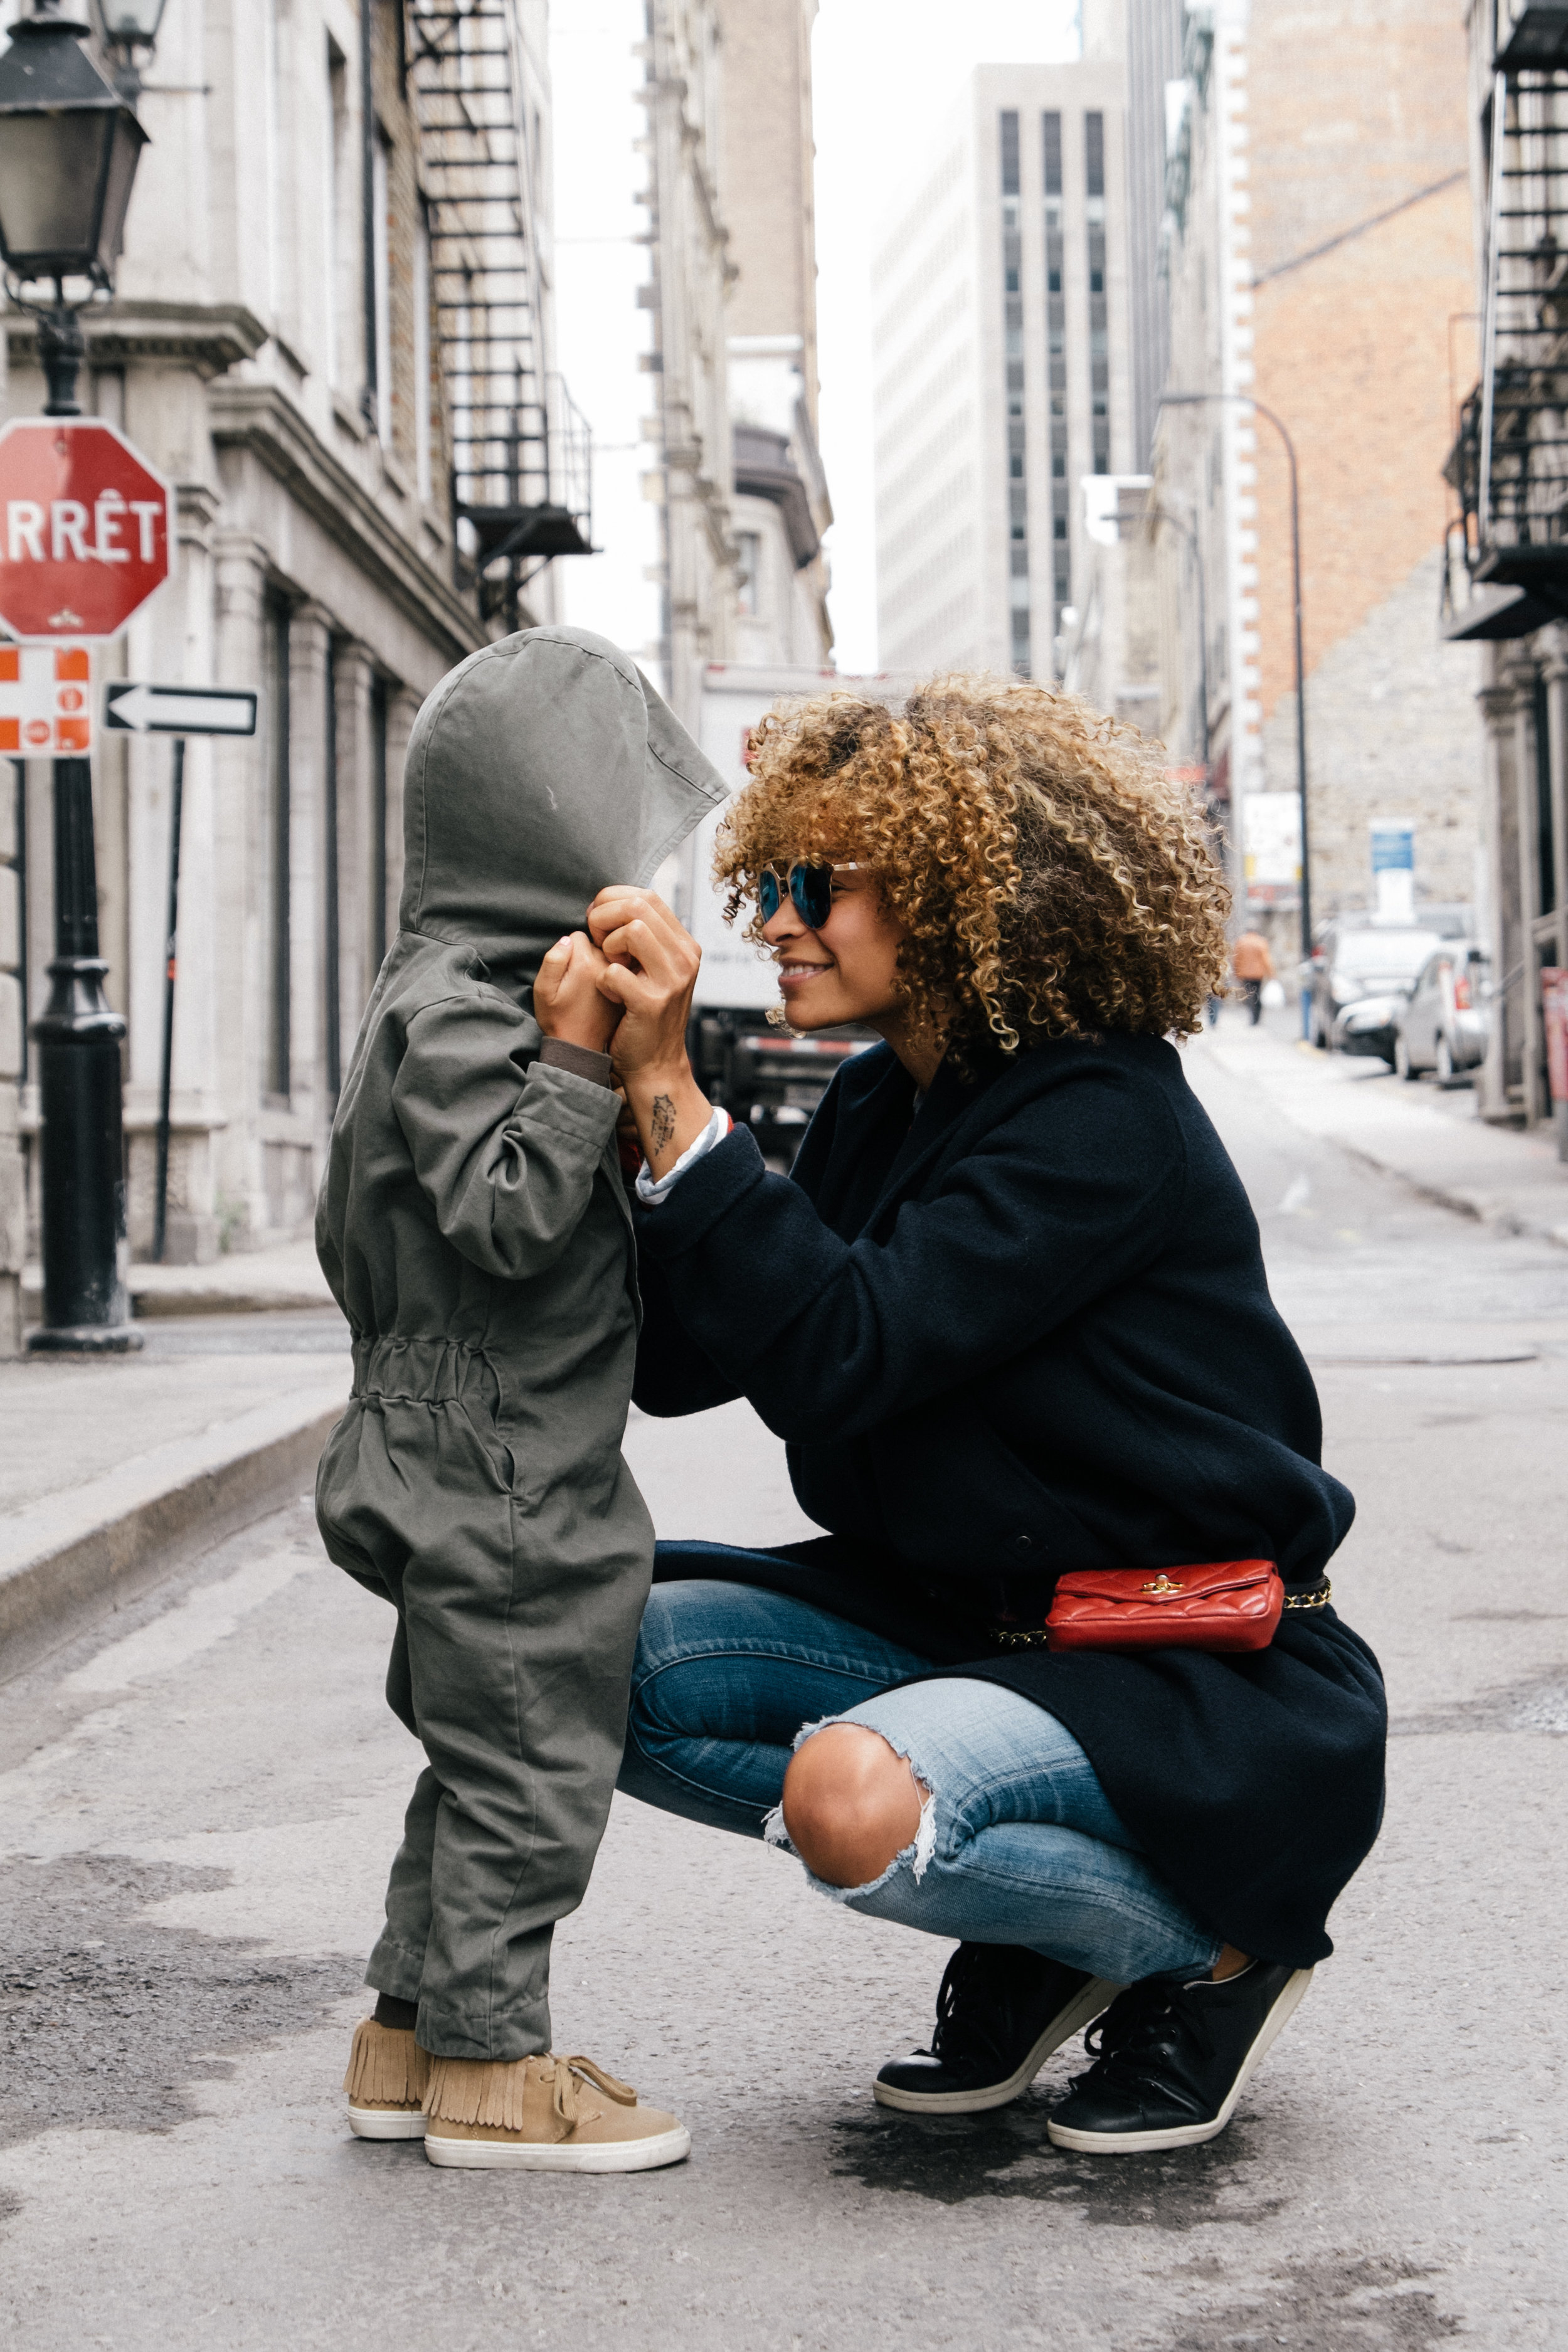 If something happens to you and your child is home with a babysitter, or at school, you want to also name local people, friends or family, who would immediately be able to be called upon by authorities.